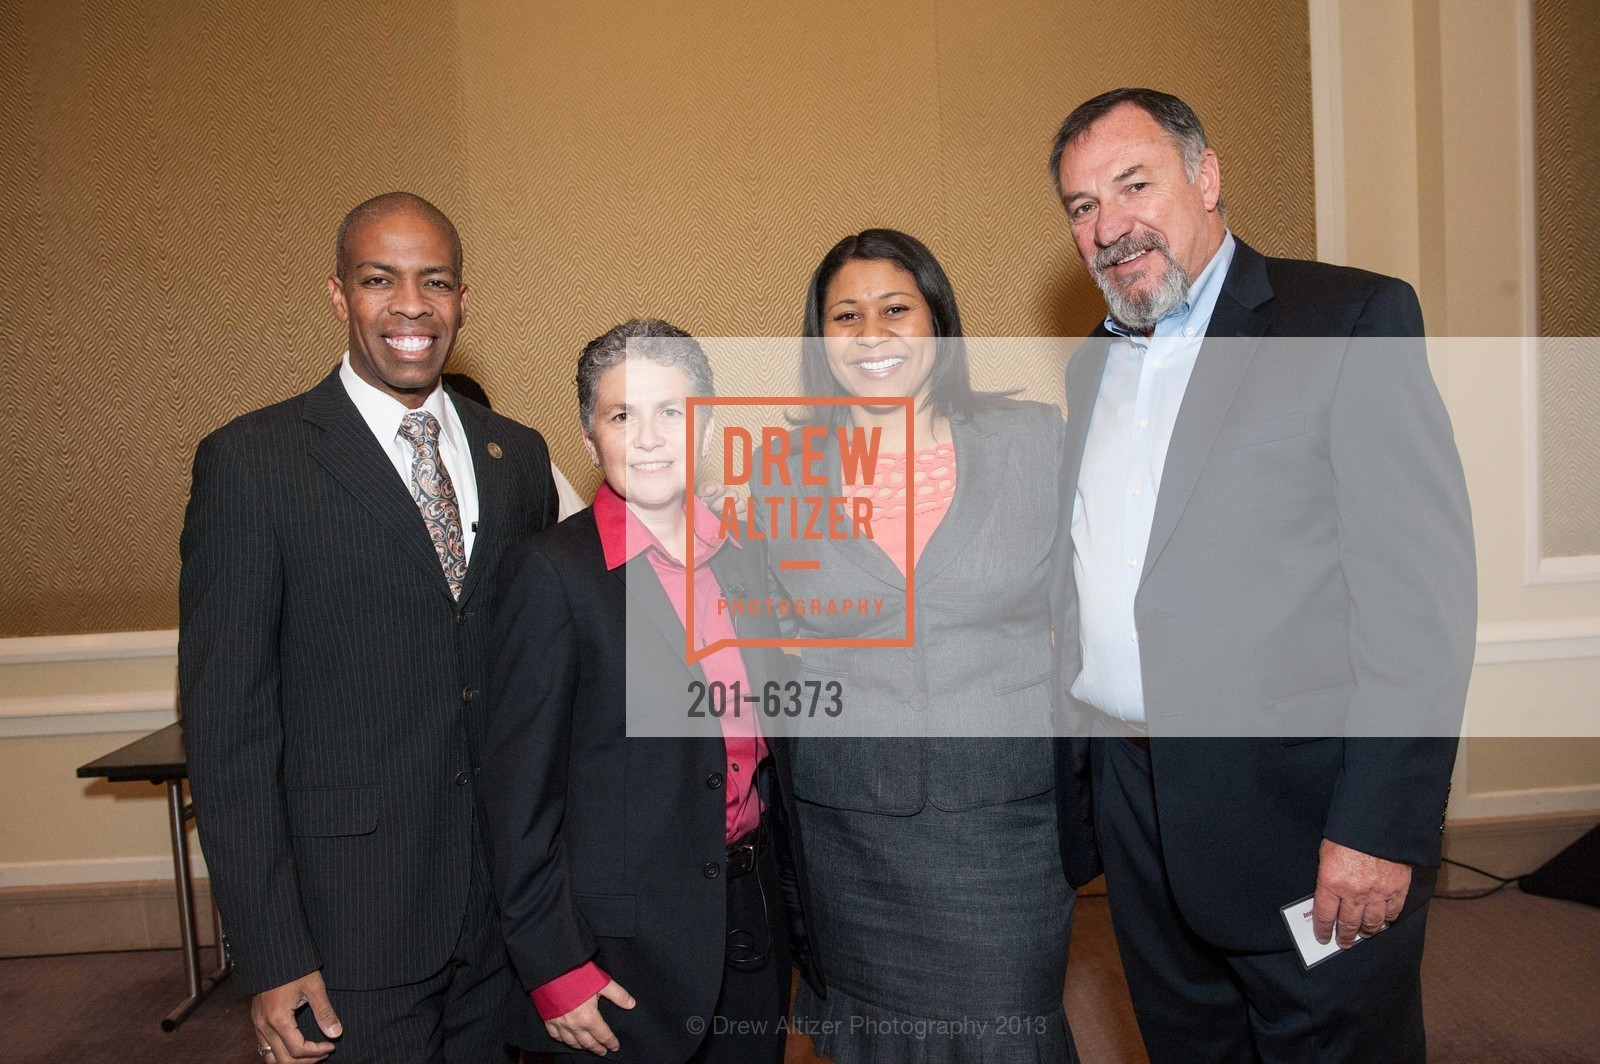 Paul Henderson, Vitka Eisen, London Breed, Chris Cunnie, HEALTH RIGHT 360:  Be the Change 2013, US, November 8th, 2013,Drew Altizer, Drew Altizer Photography, full-service agency, private events, San Francisco photographer, photographer california